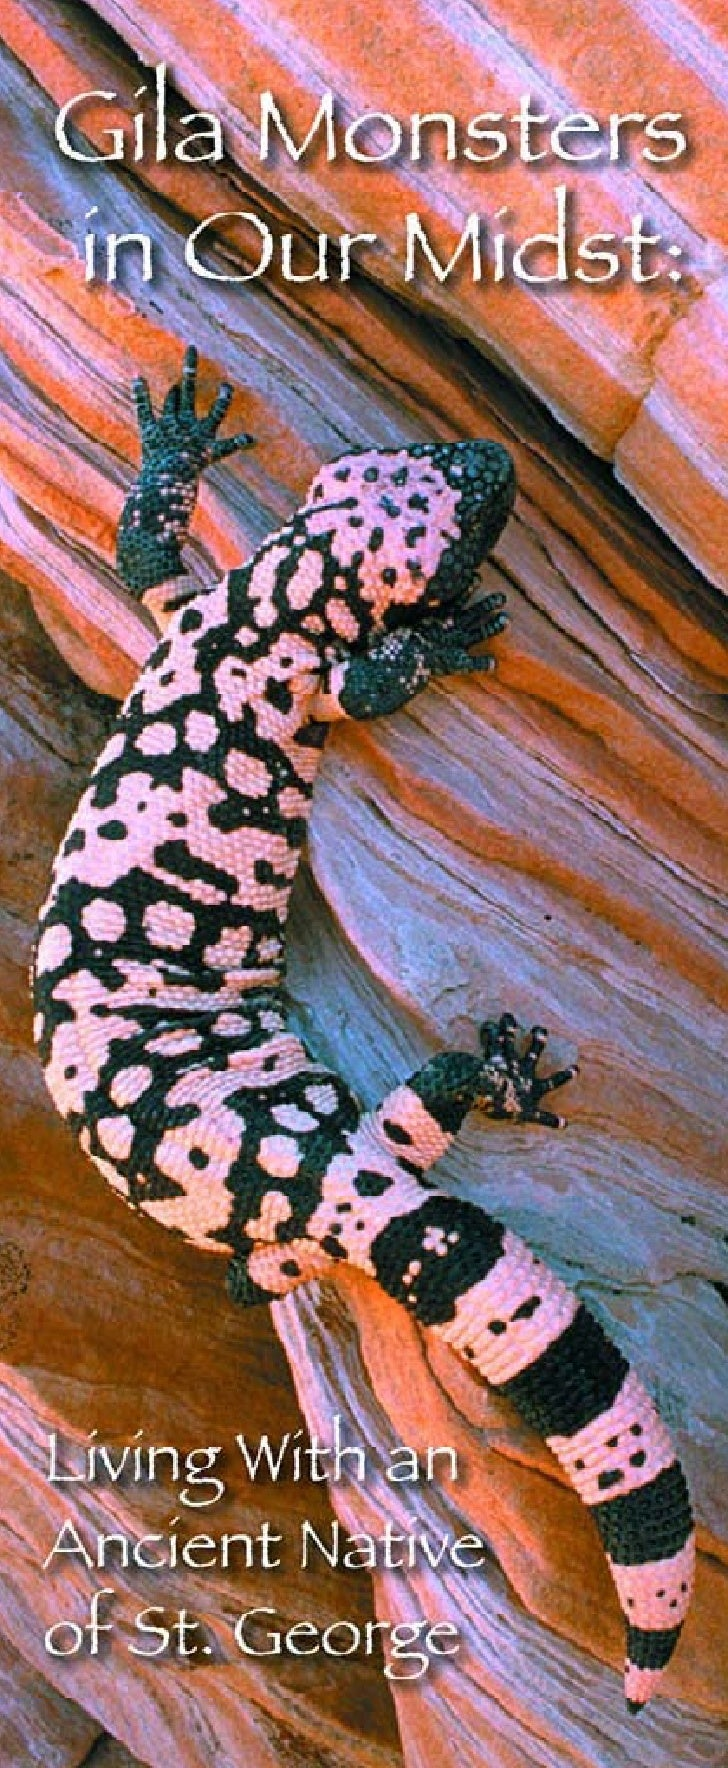 I f you live, work or play in the desert around St. George, you may come upon a Gila Monster. The Gila Monster is an ancie...